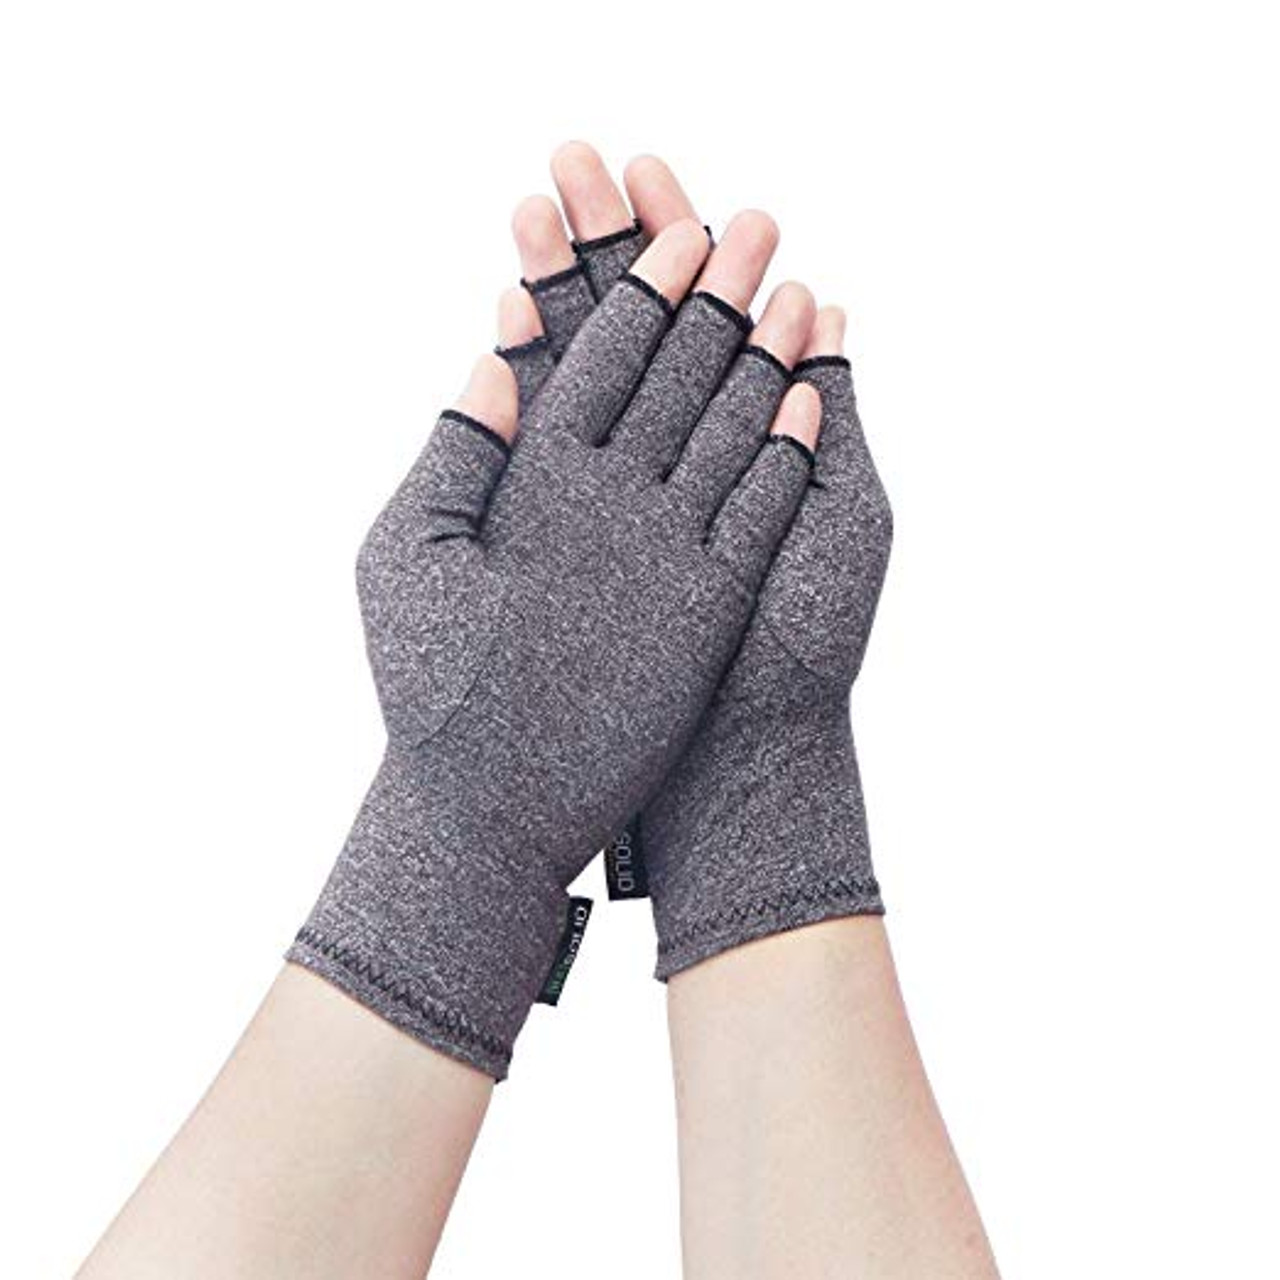 """Compression Gloves- Relieve Arthritis Pain, Small (Dia. of palm < 3.1"""")"""